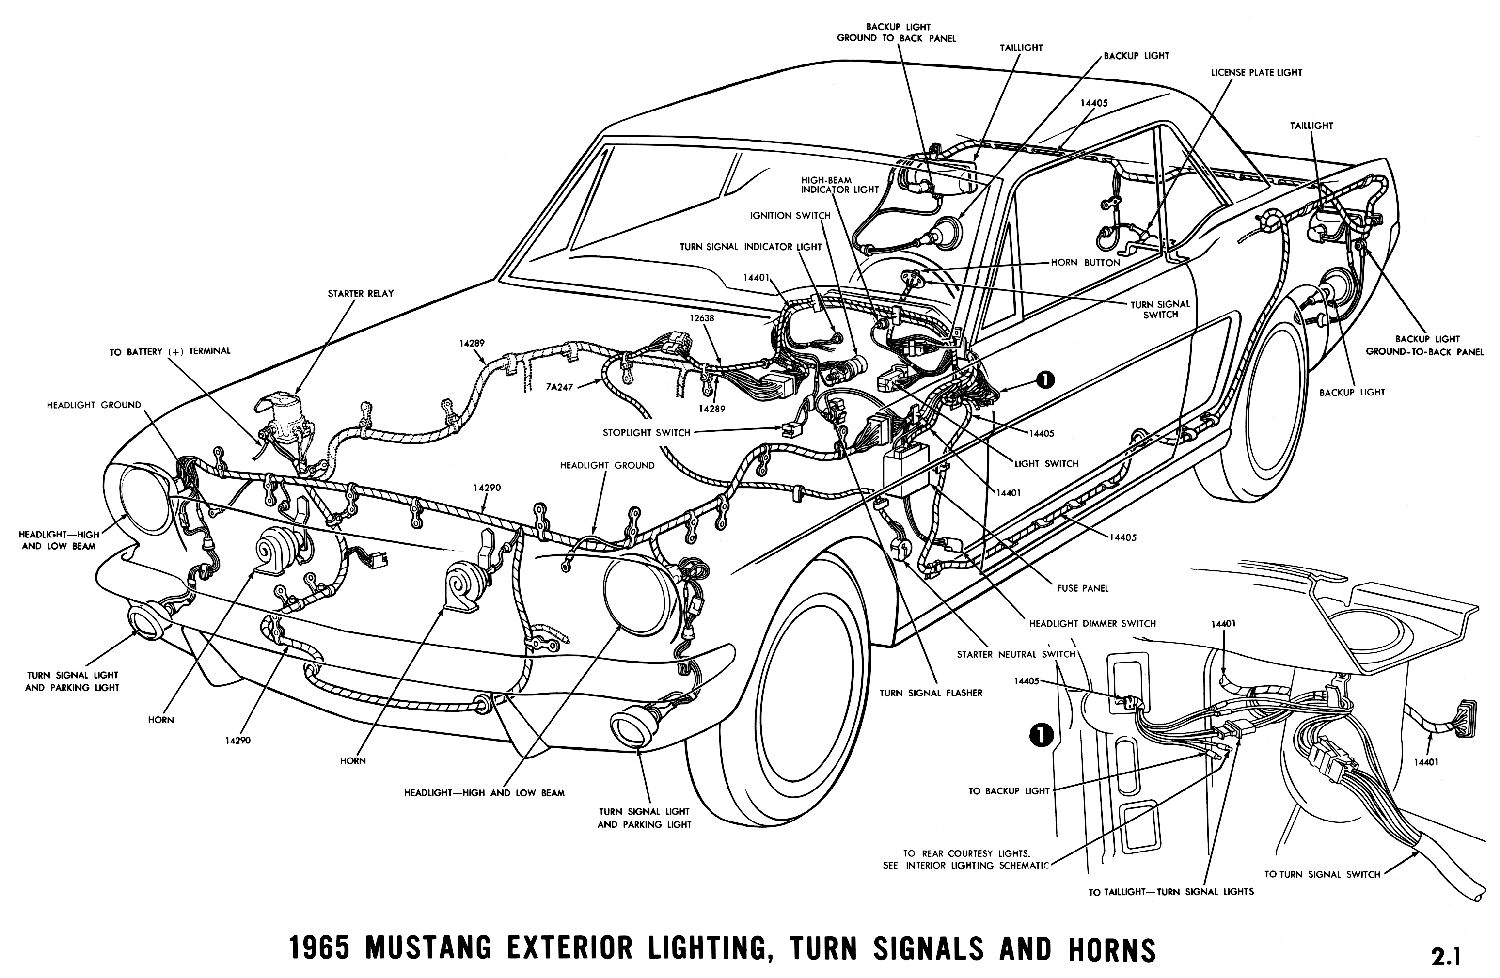 1965d 1965 mustang wiring diagrams average joe restoration 65 mustang tail light wiring diagram at n-0.co